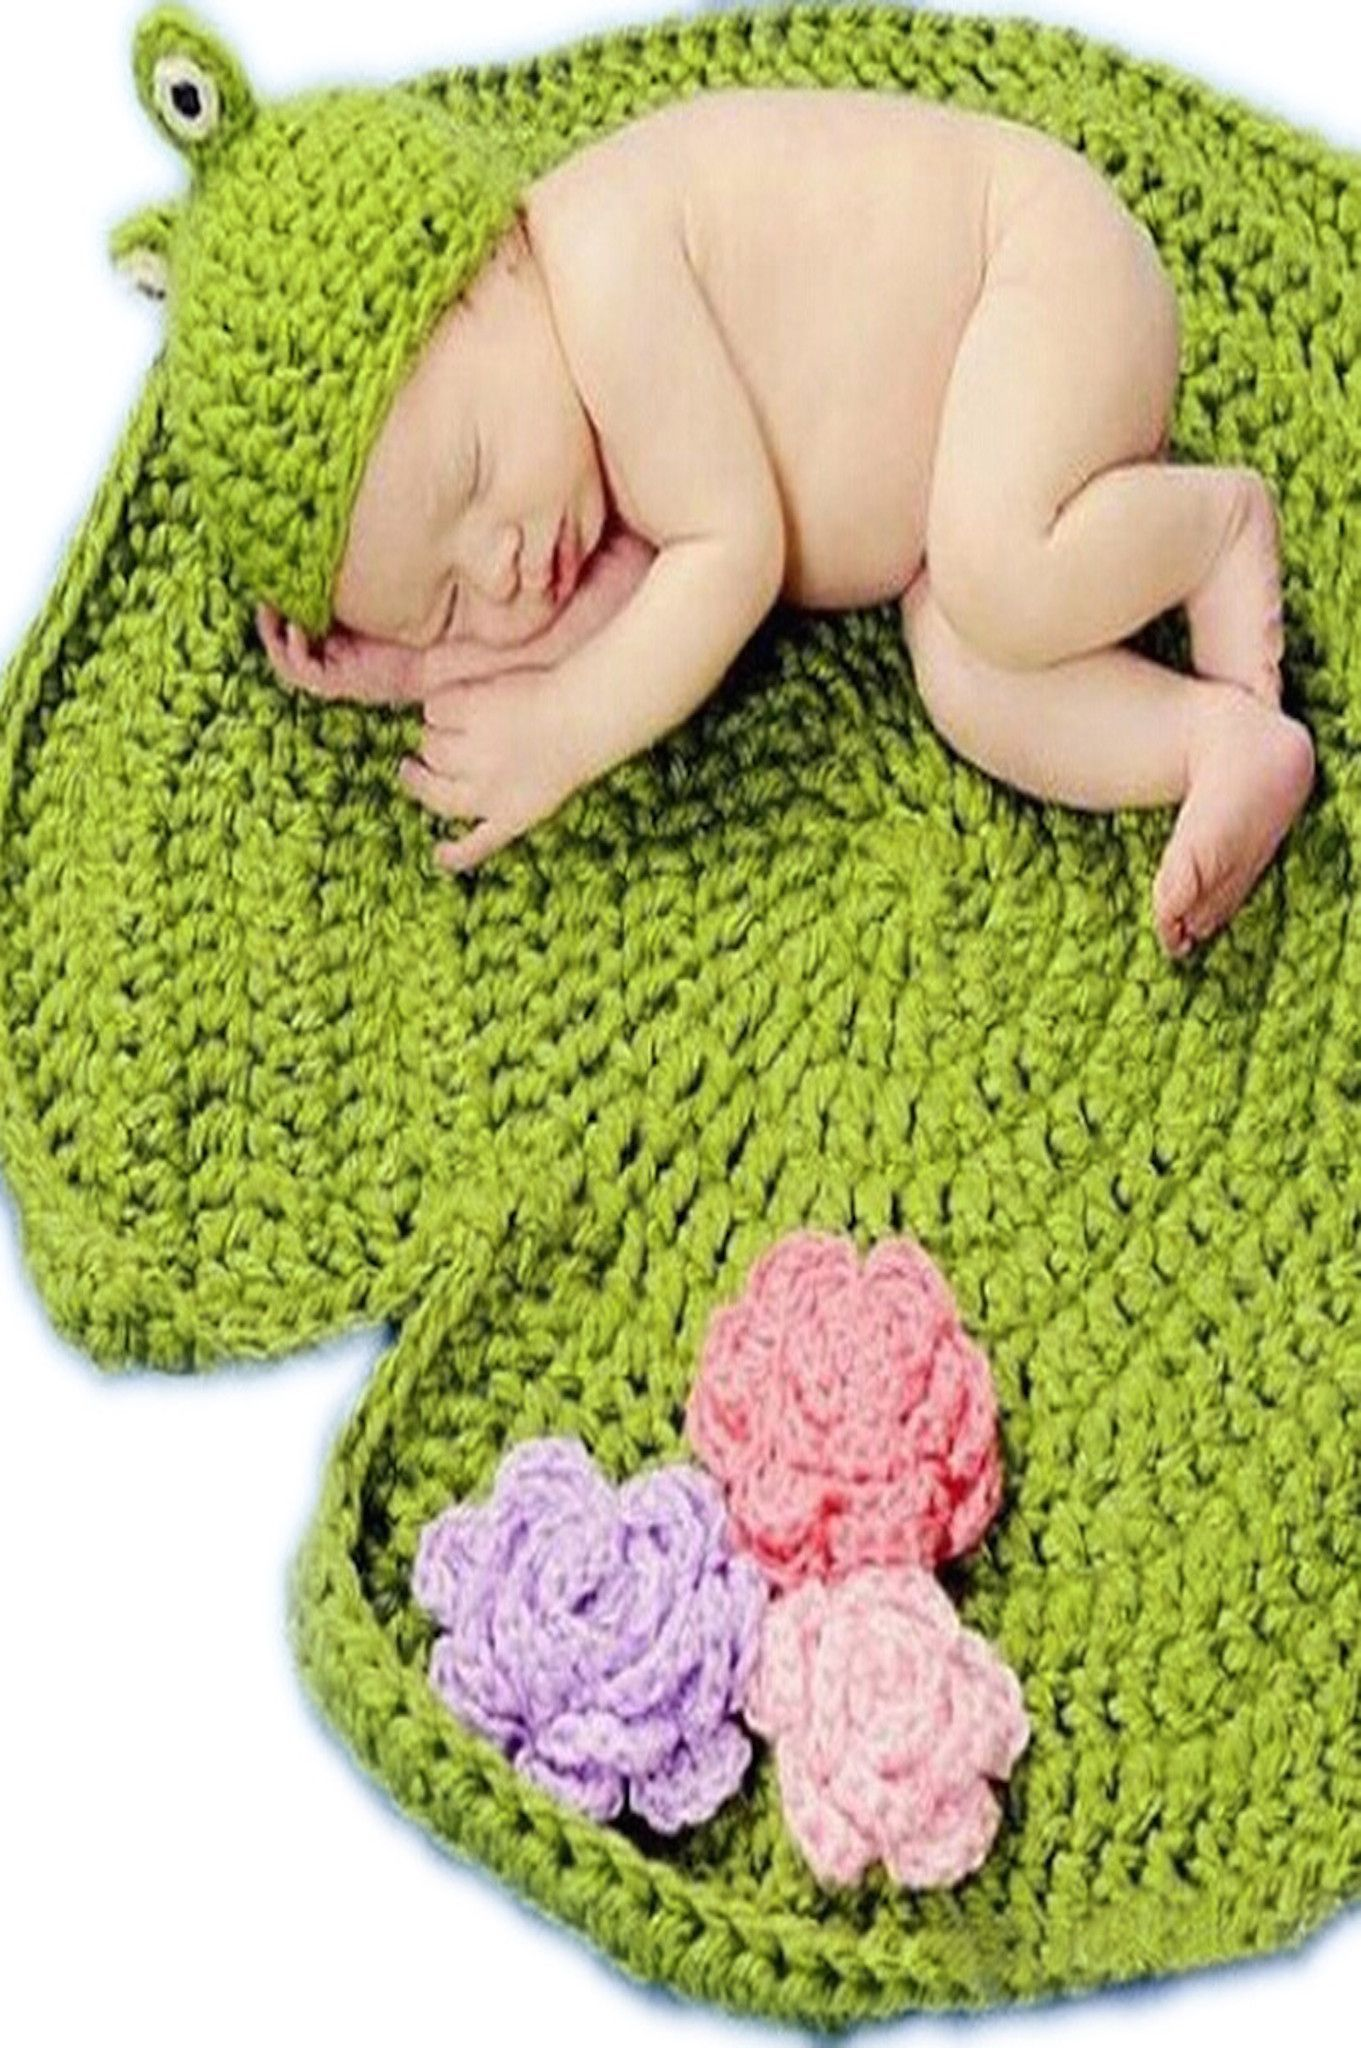 Lotus Lily Pad Frog Crochet Baby Outfit Hat Set - CCFRLO | Häkeln